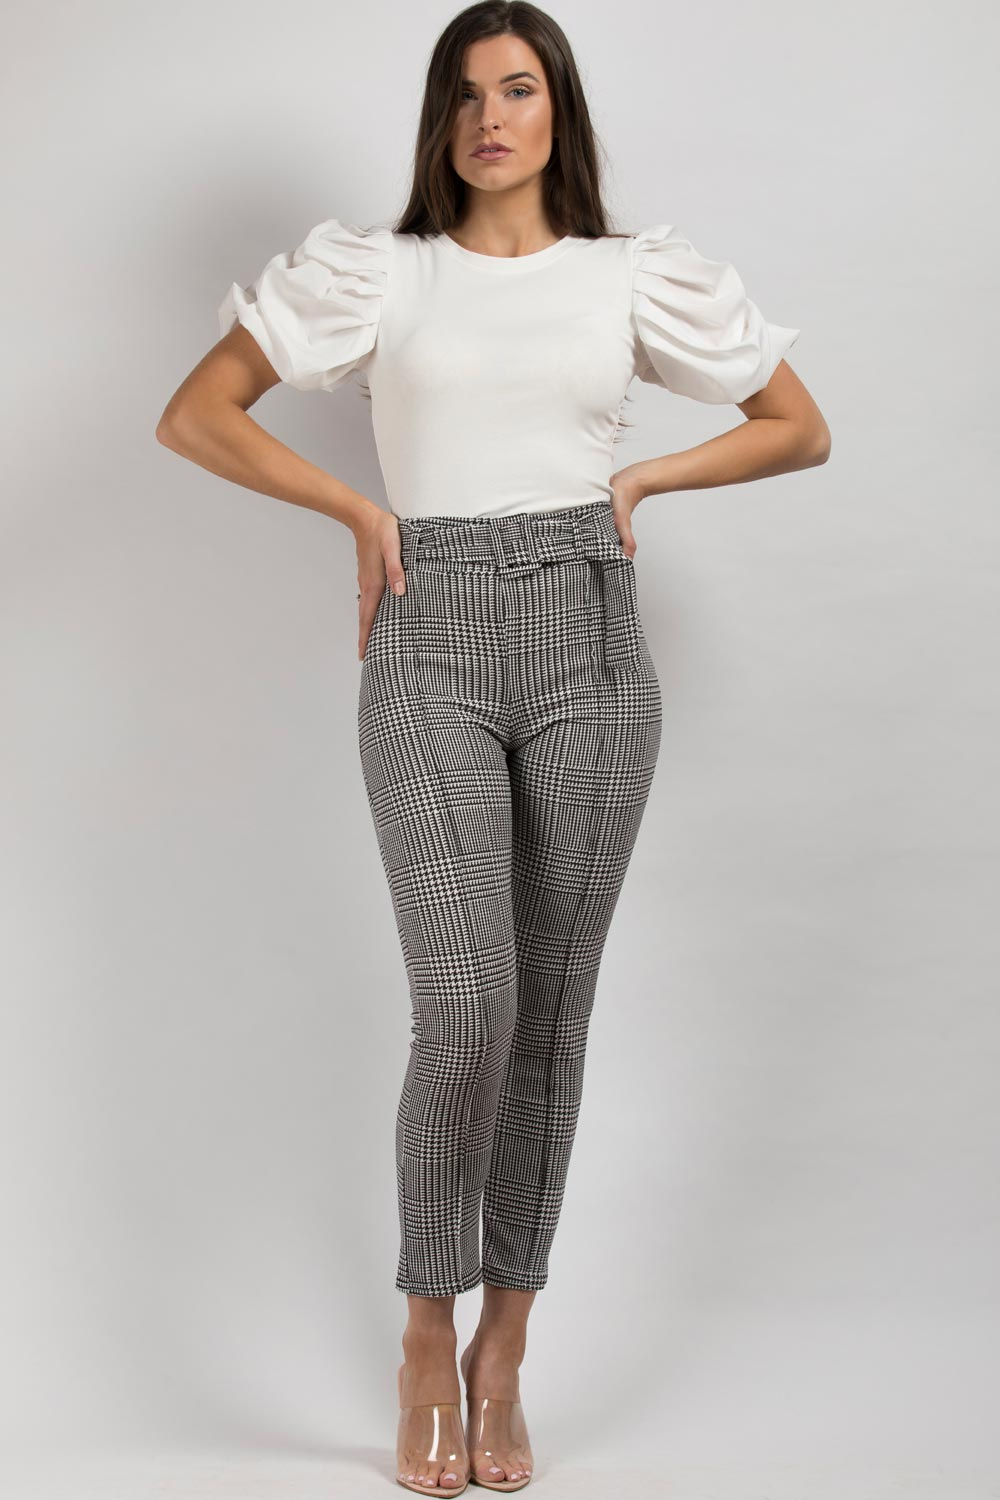 black white belted trousers womens